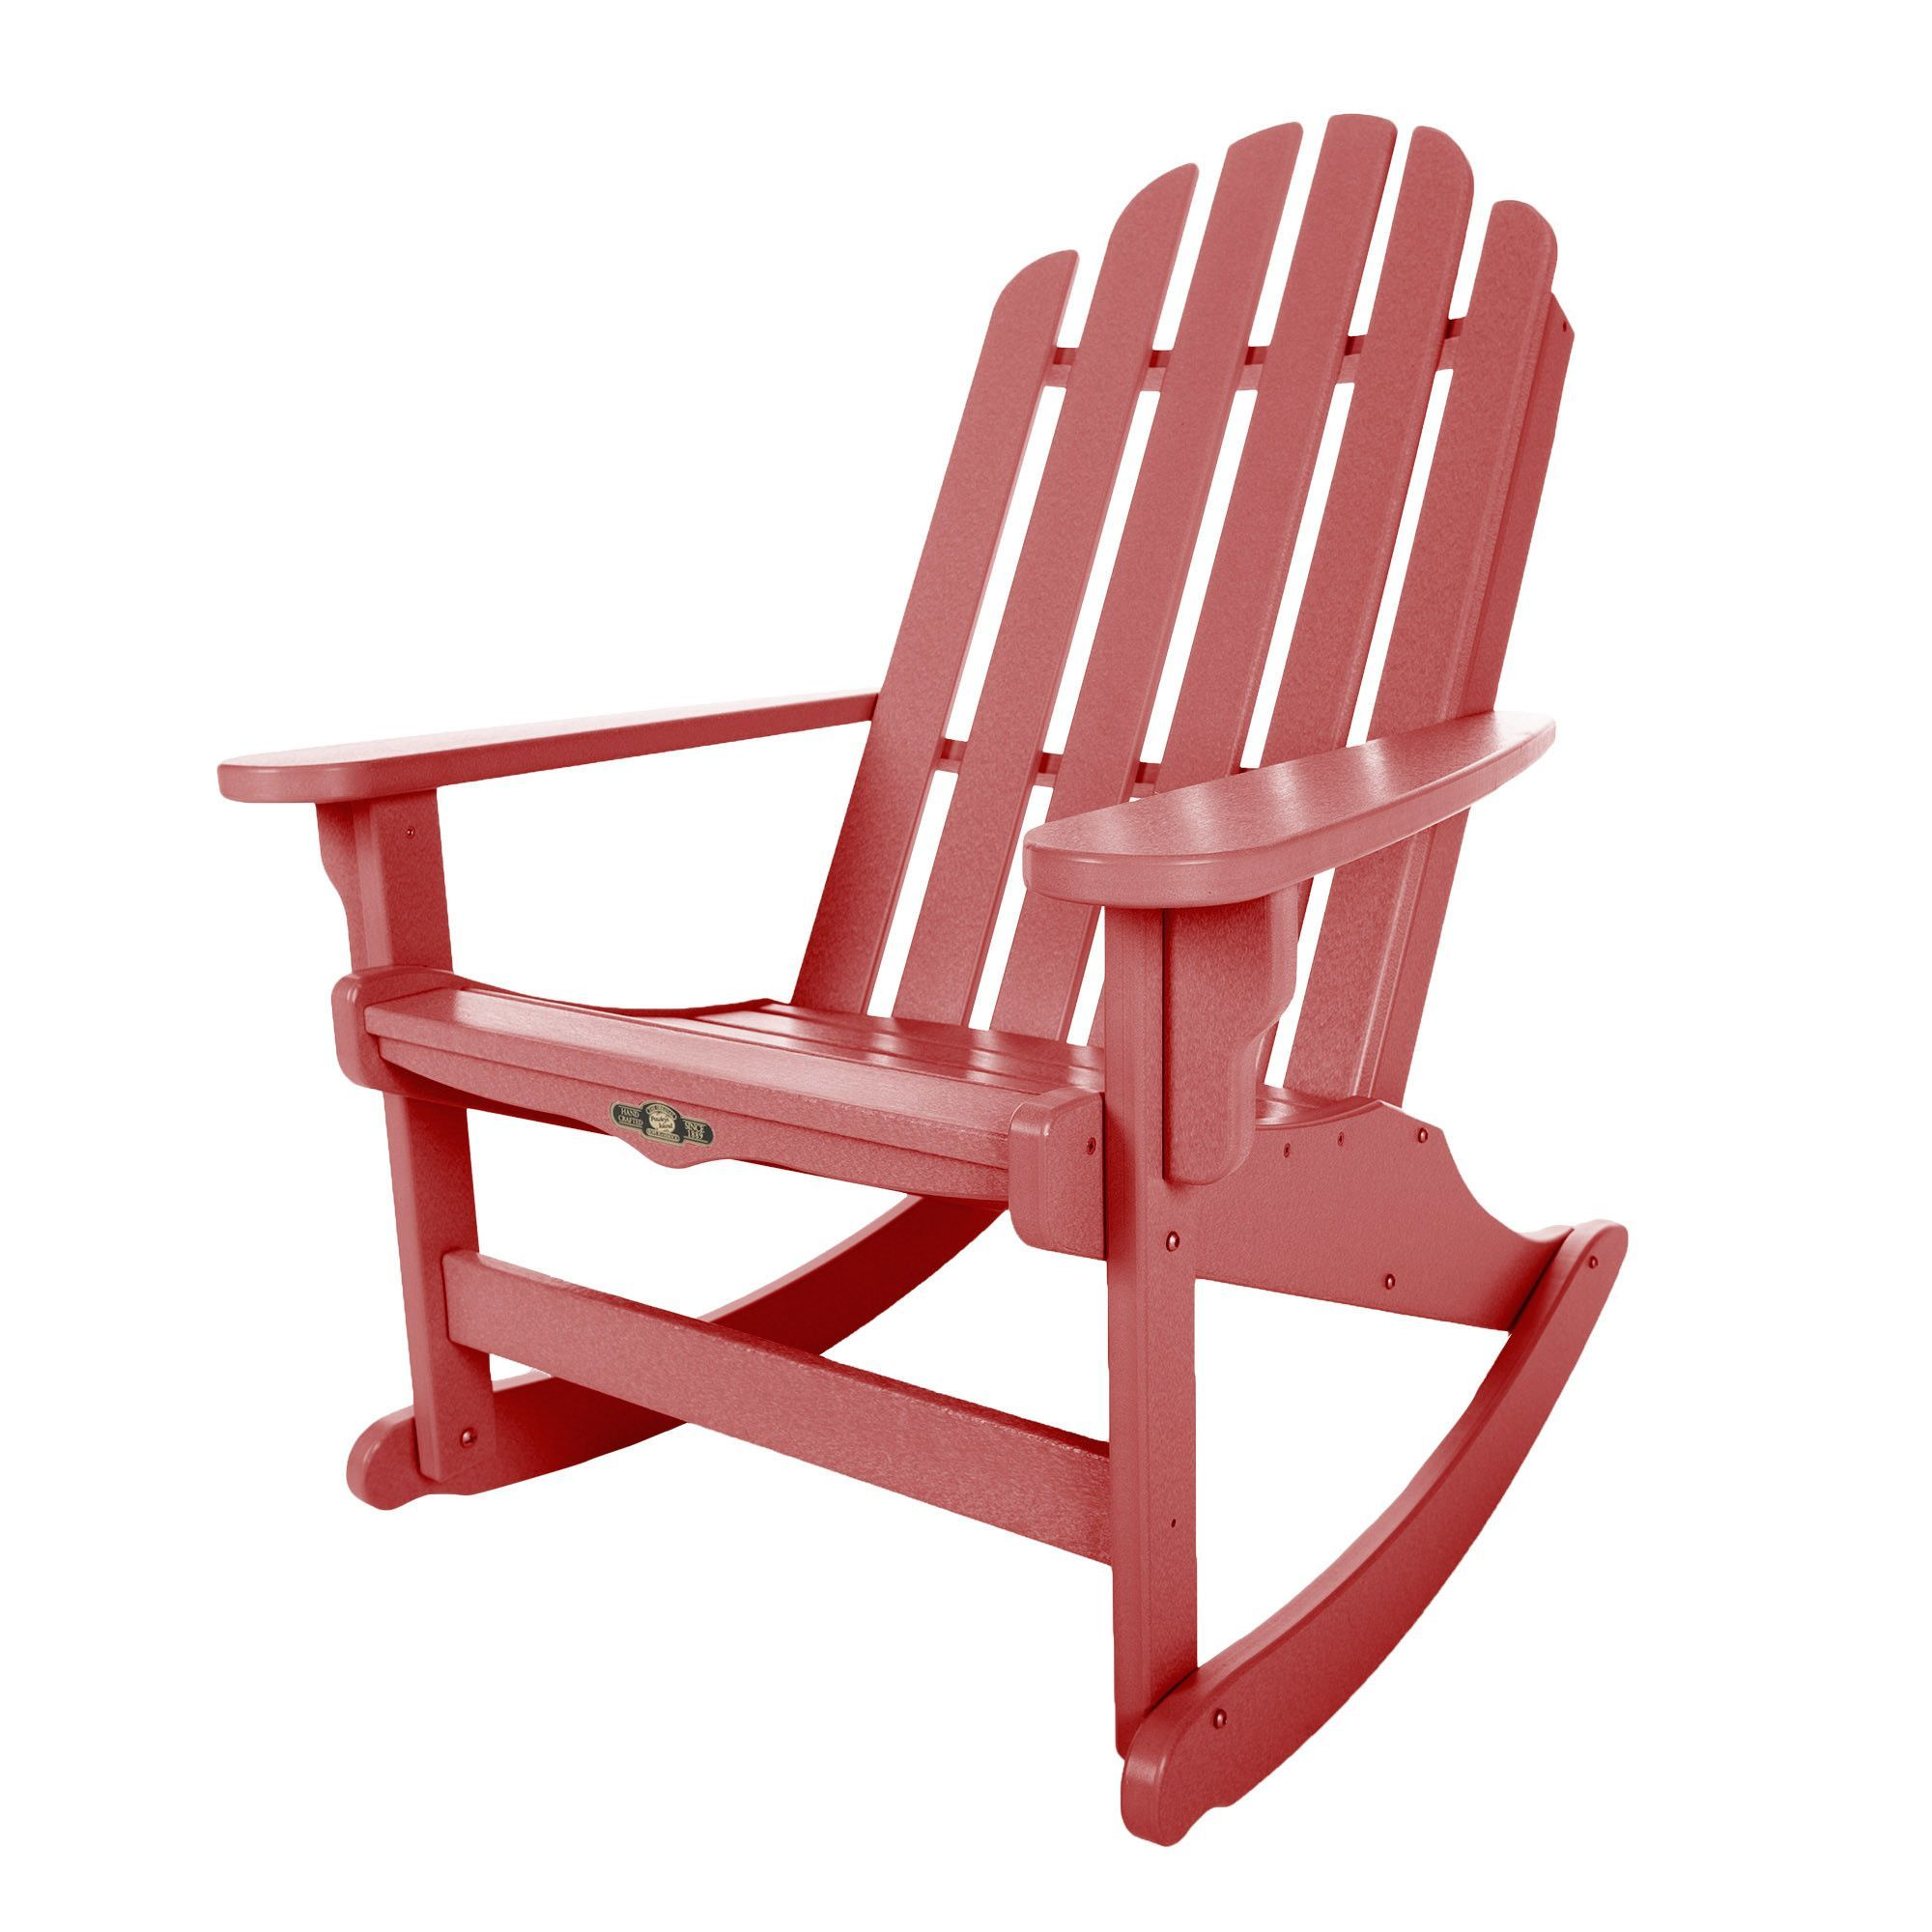 Rajesh Rocking Chair Adirondack rocking chair, Patio